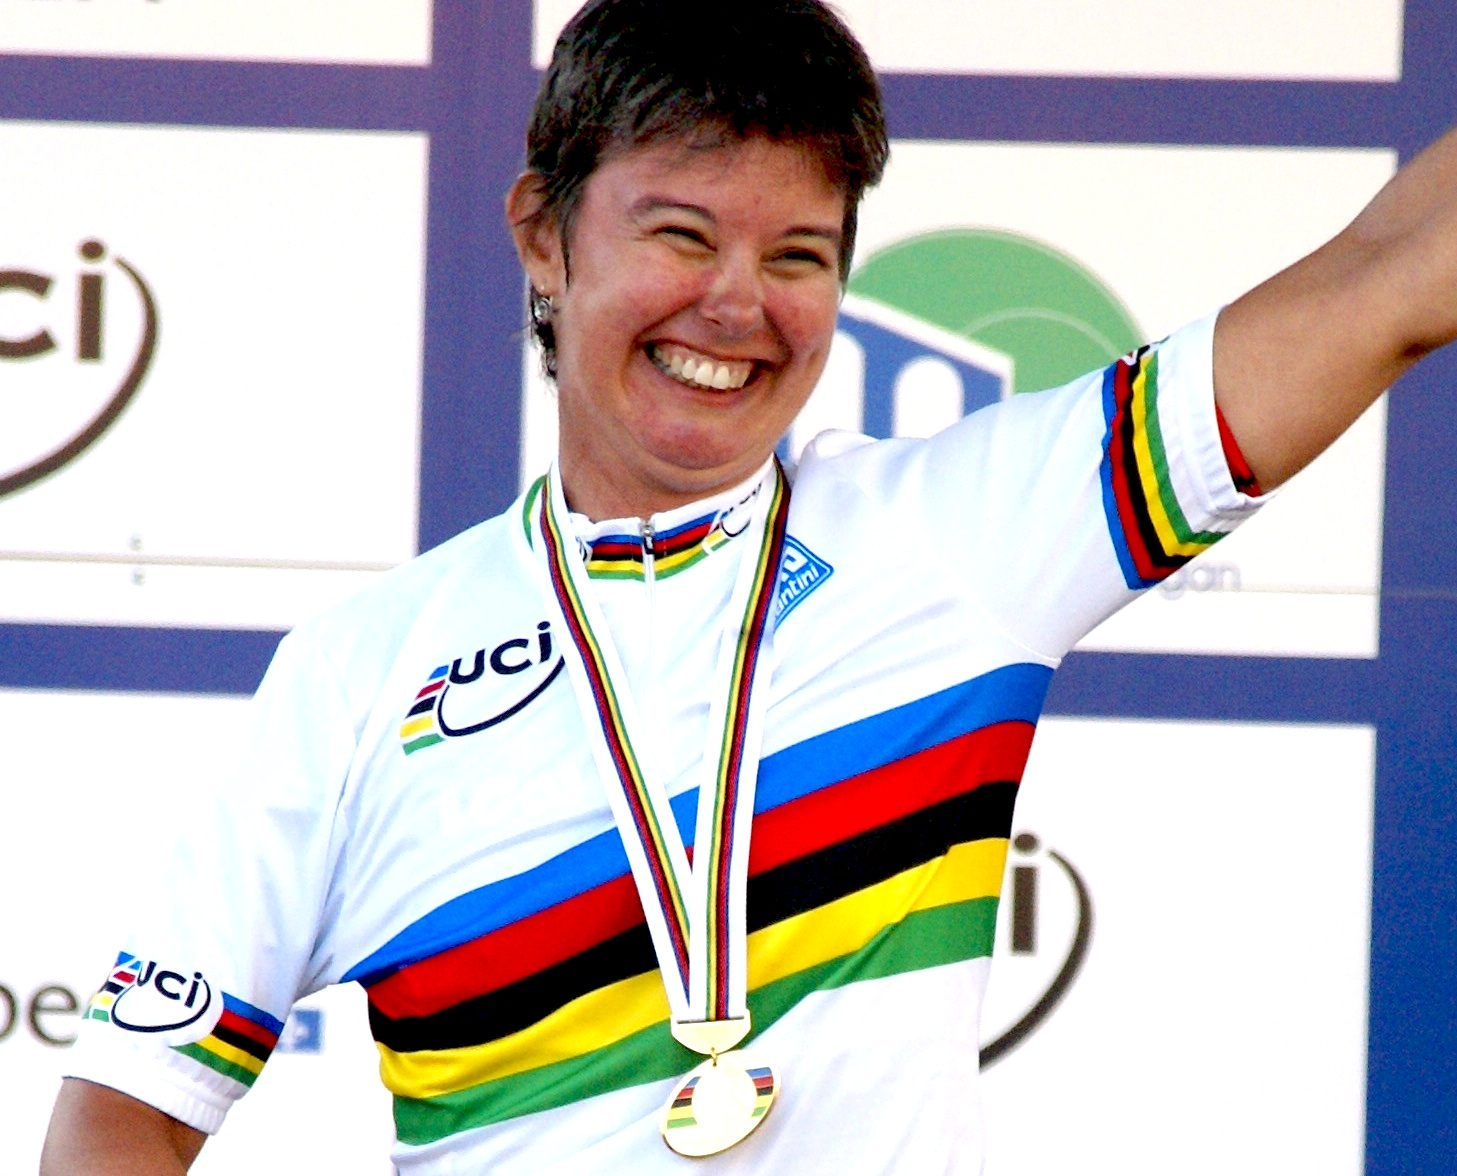 Shelley Gautier - Para Cycling World Champion  ©  Shelley Gautier Foundation